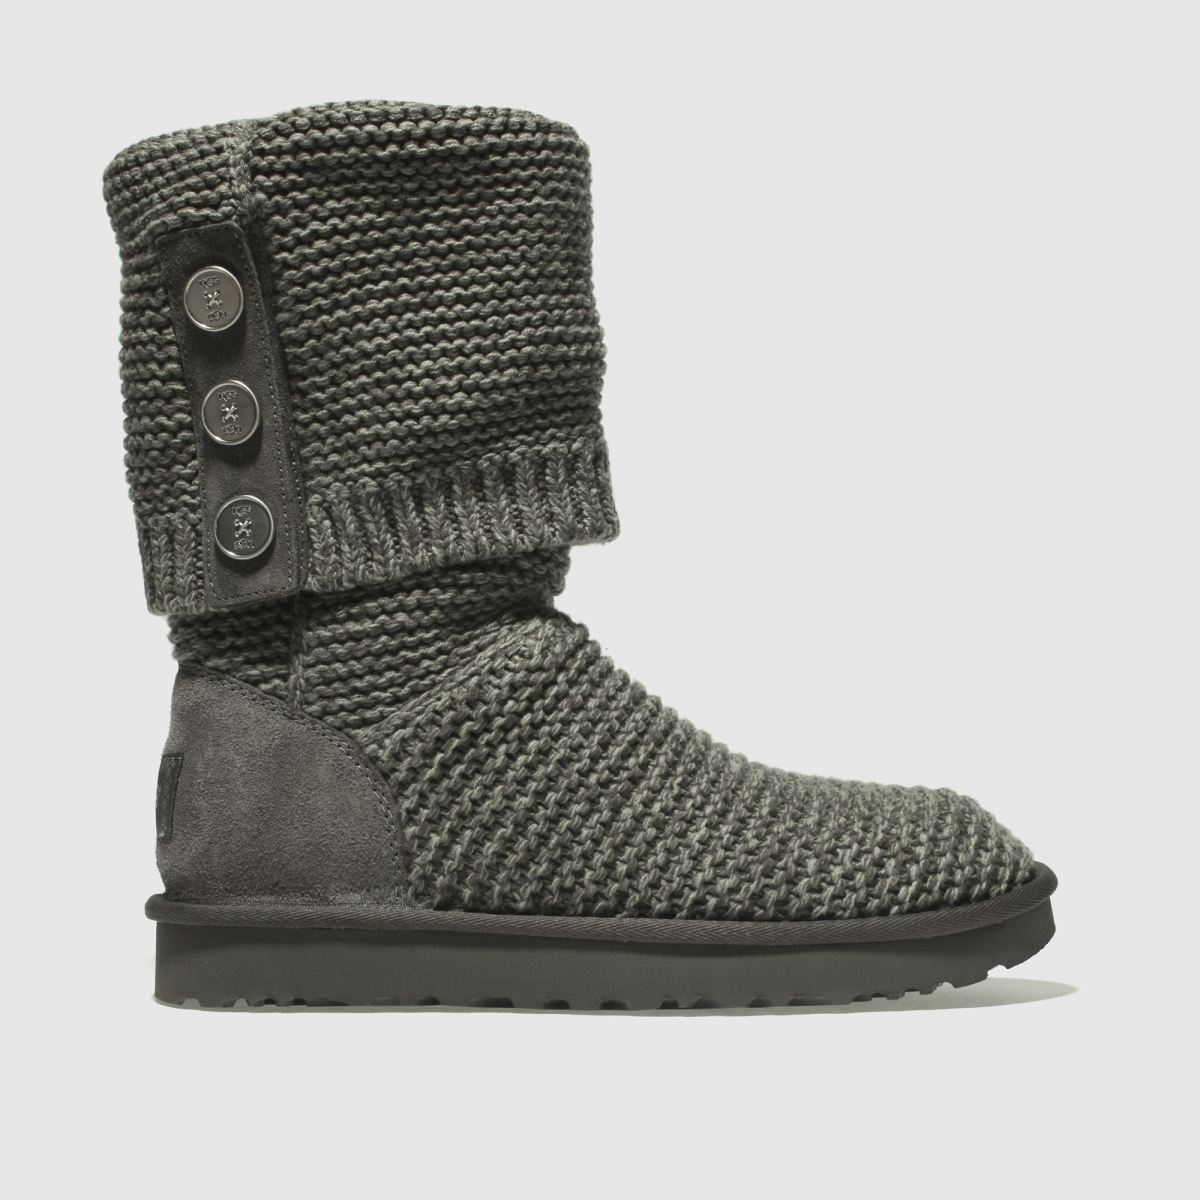 Ugg Grey Purl Cardy Knit Boots